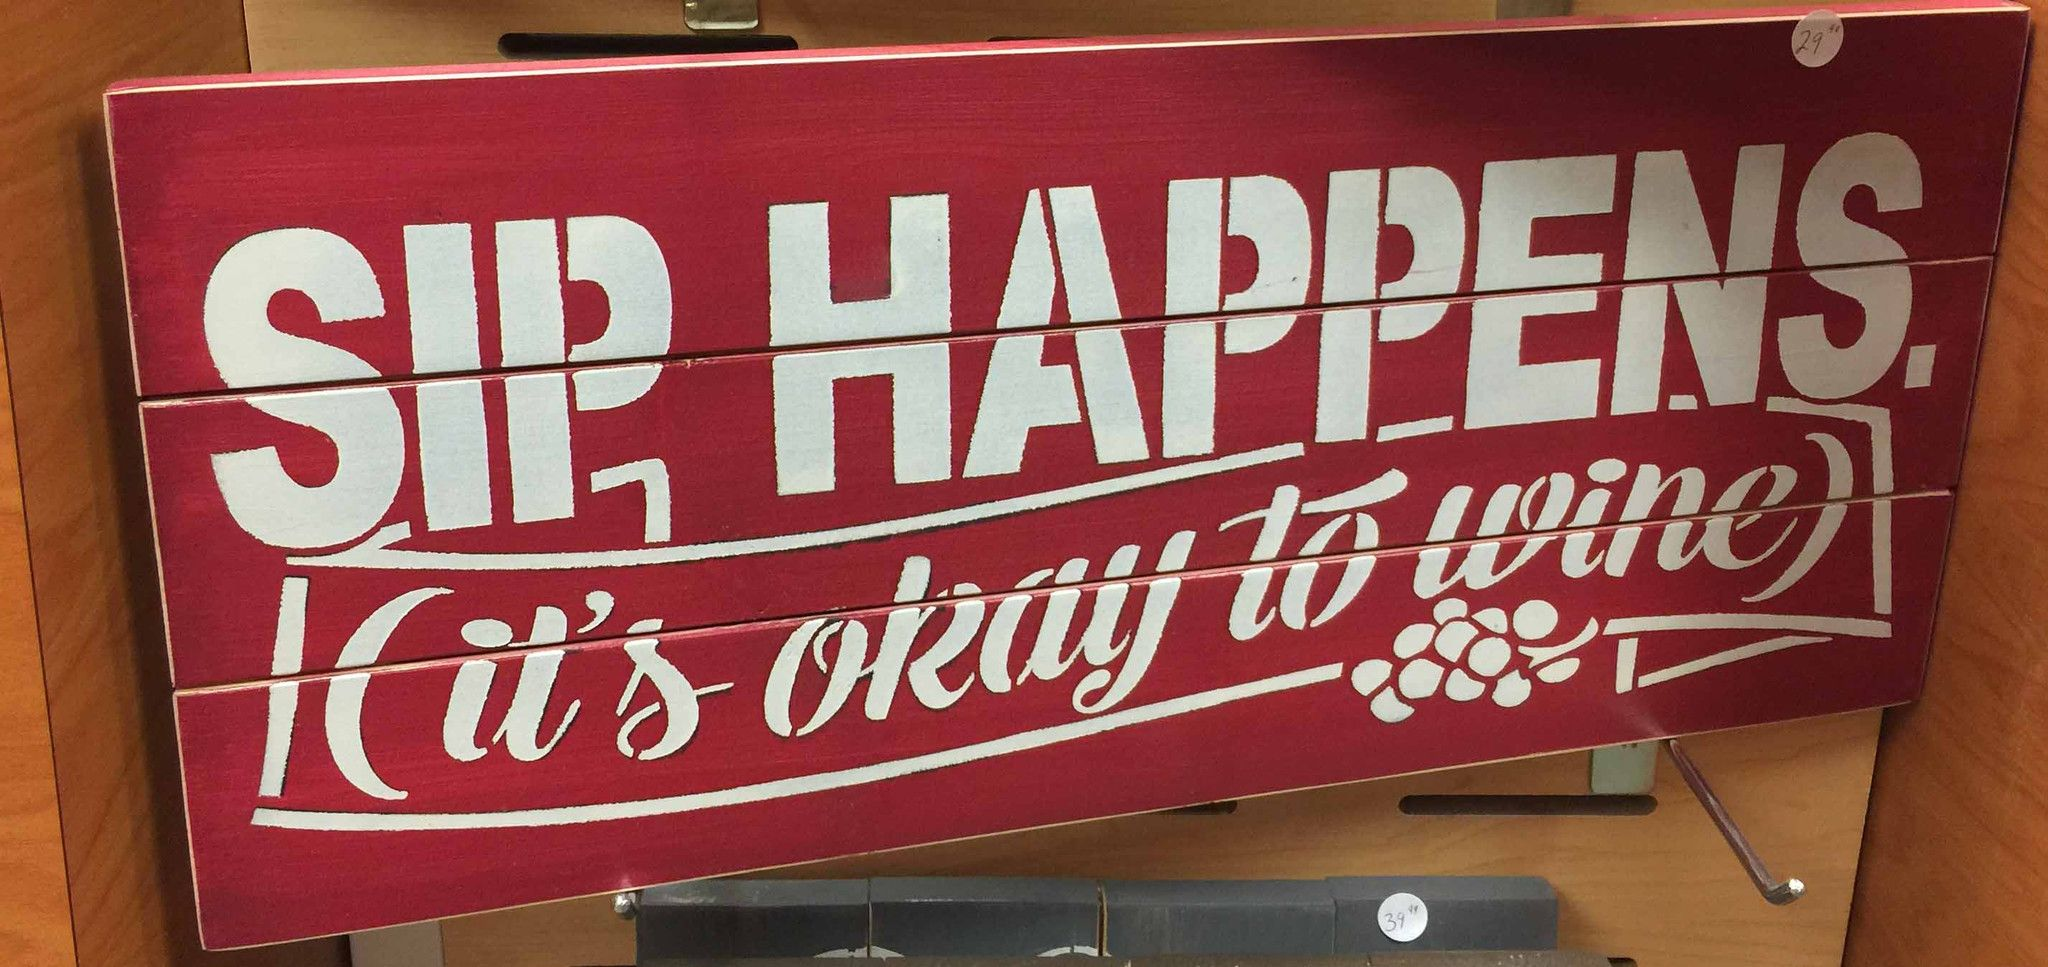 Sip Happens It S Ok To Wine Sign Signs Of Vinyl 29 99 712 541 1848 Sioux